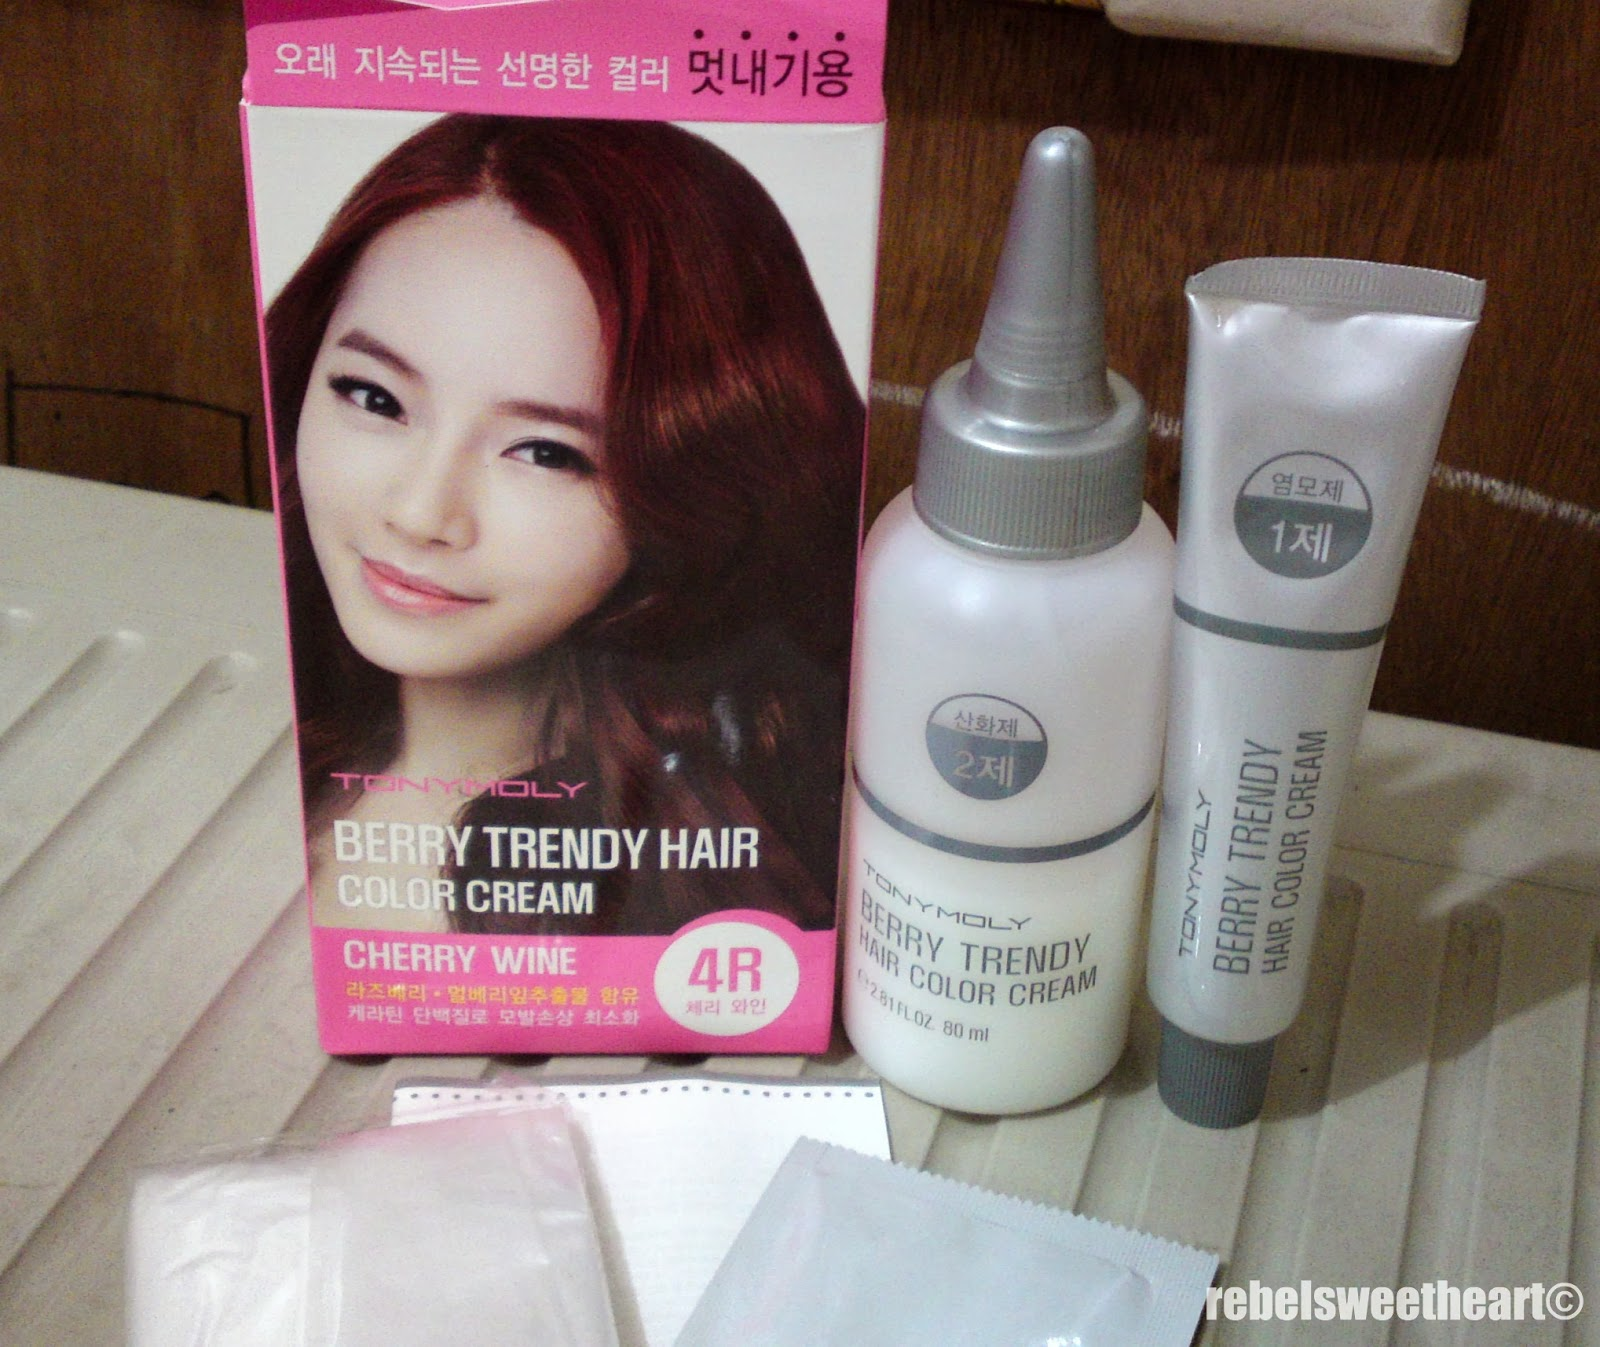 The Rebel Sweetheart Hair Story Tony Moly Berry Trendy Hair